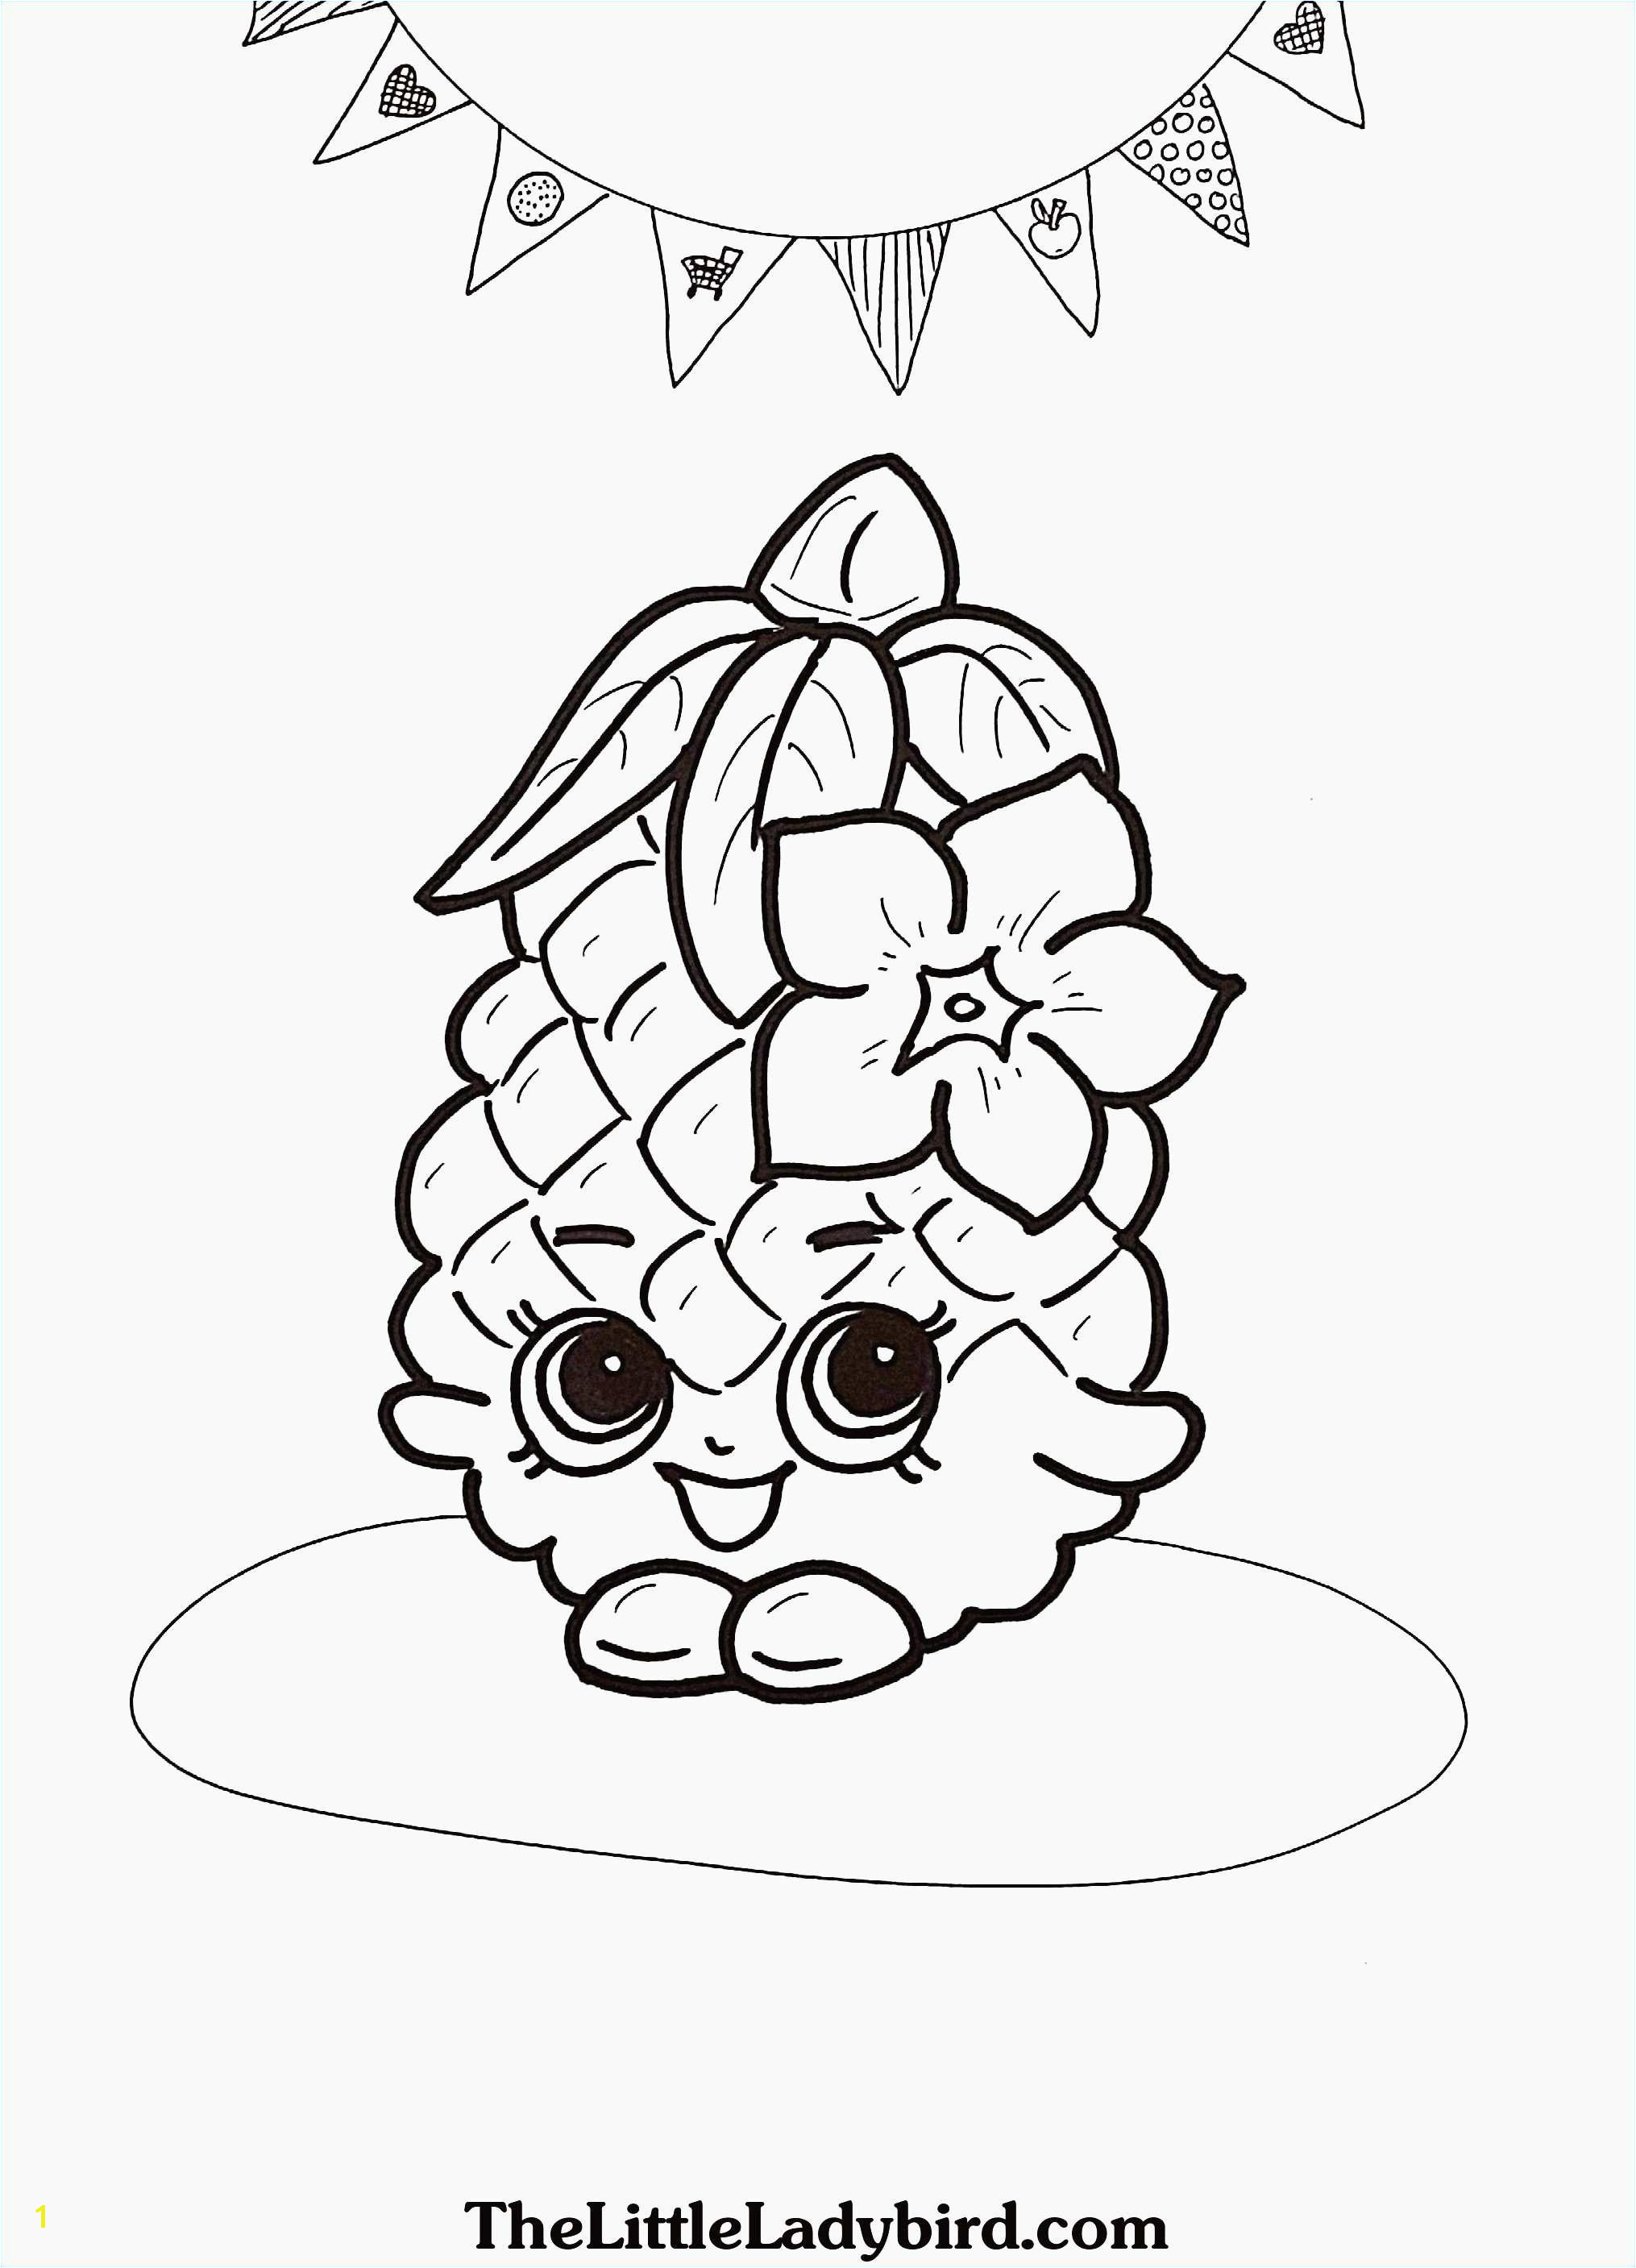 Make A Coloring Page Unique Make Coloring Pages Great Make A Coloring Page From A Verikira